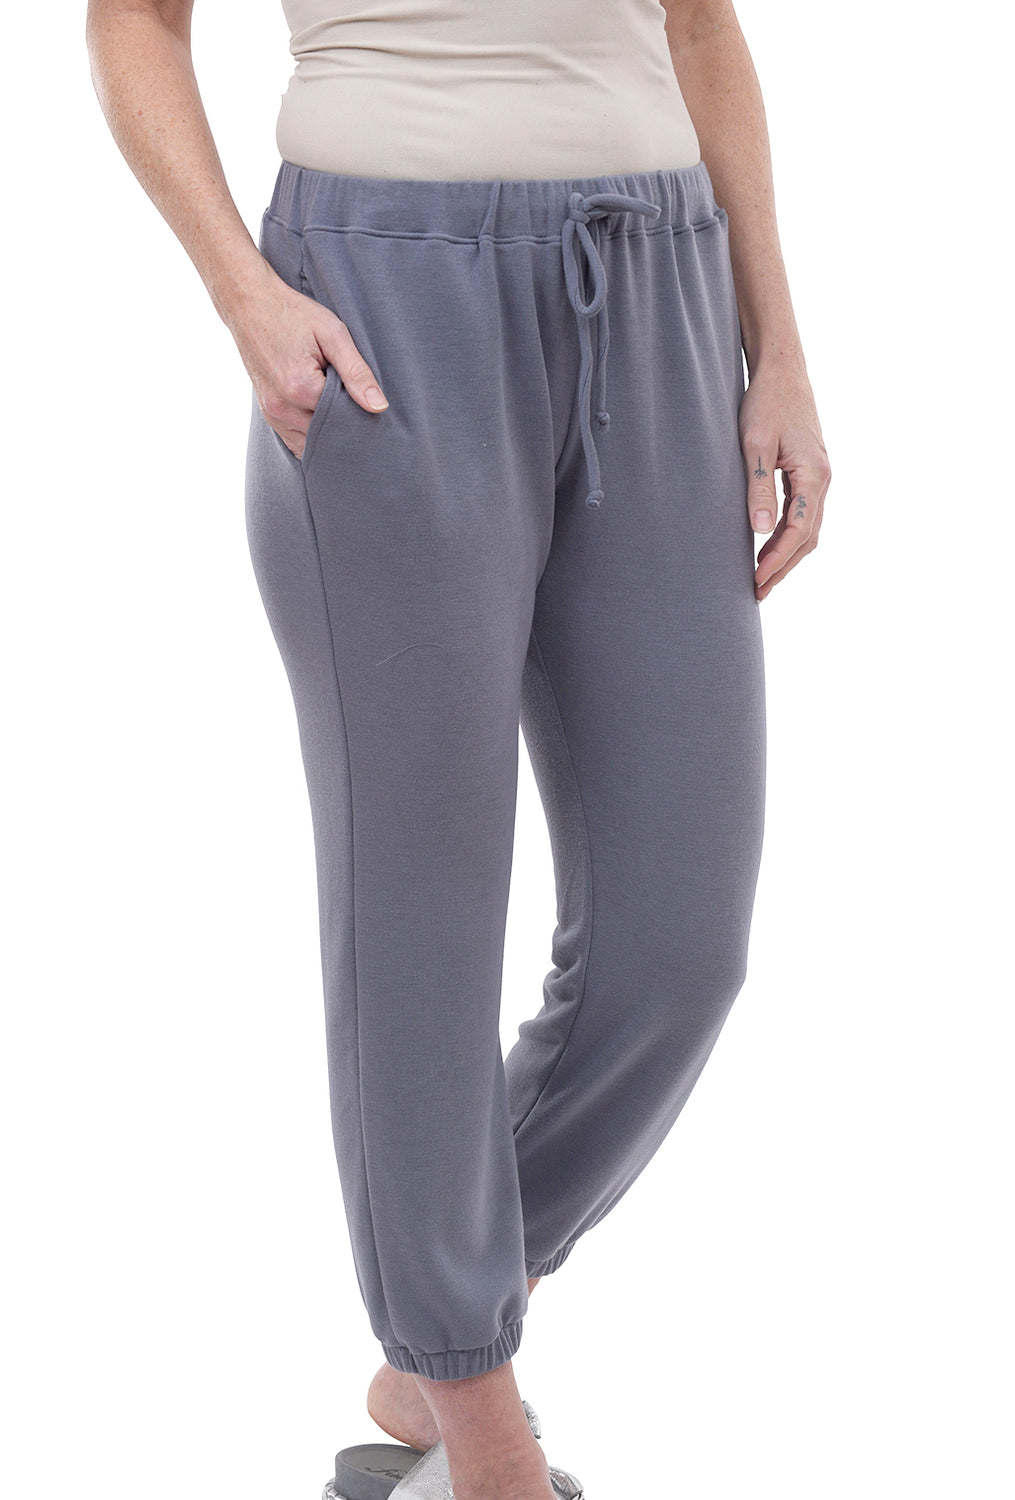 Nally & Millie French Terry Sweatpants, Slate Gray